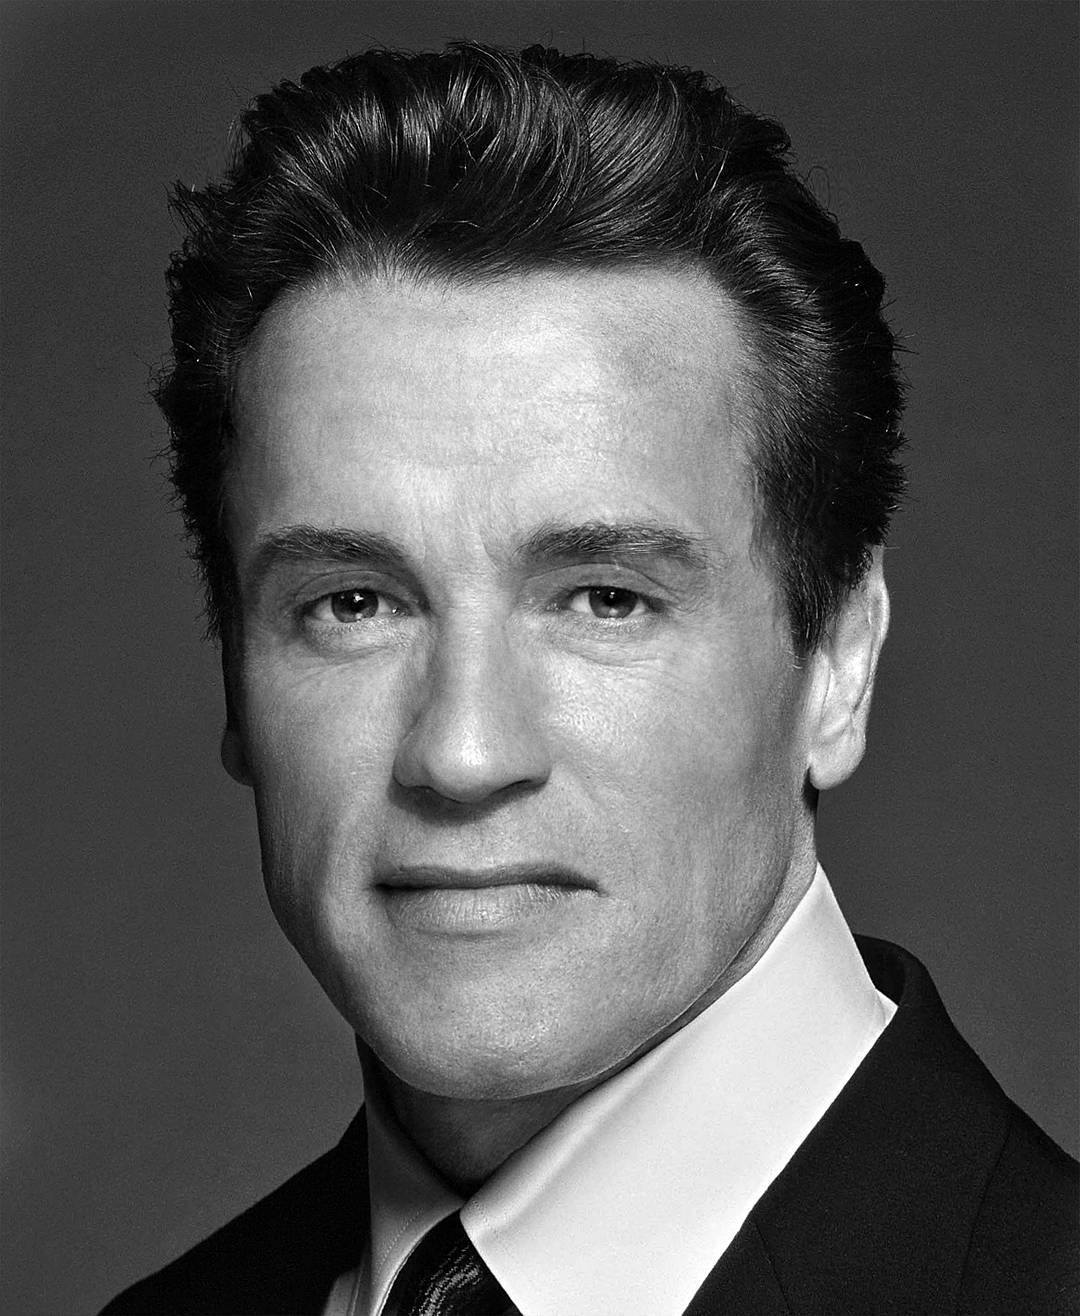 Photoshop Guru Fuses Celebrity Faces Together - Arnold Schwarzenegger and Sylvester Stallone